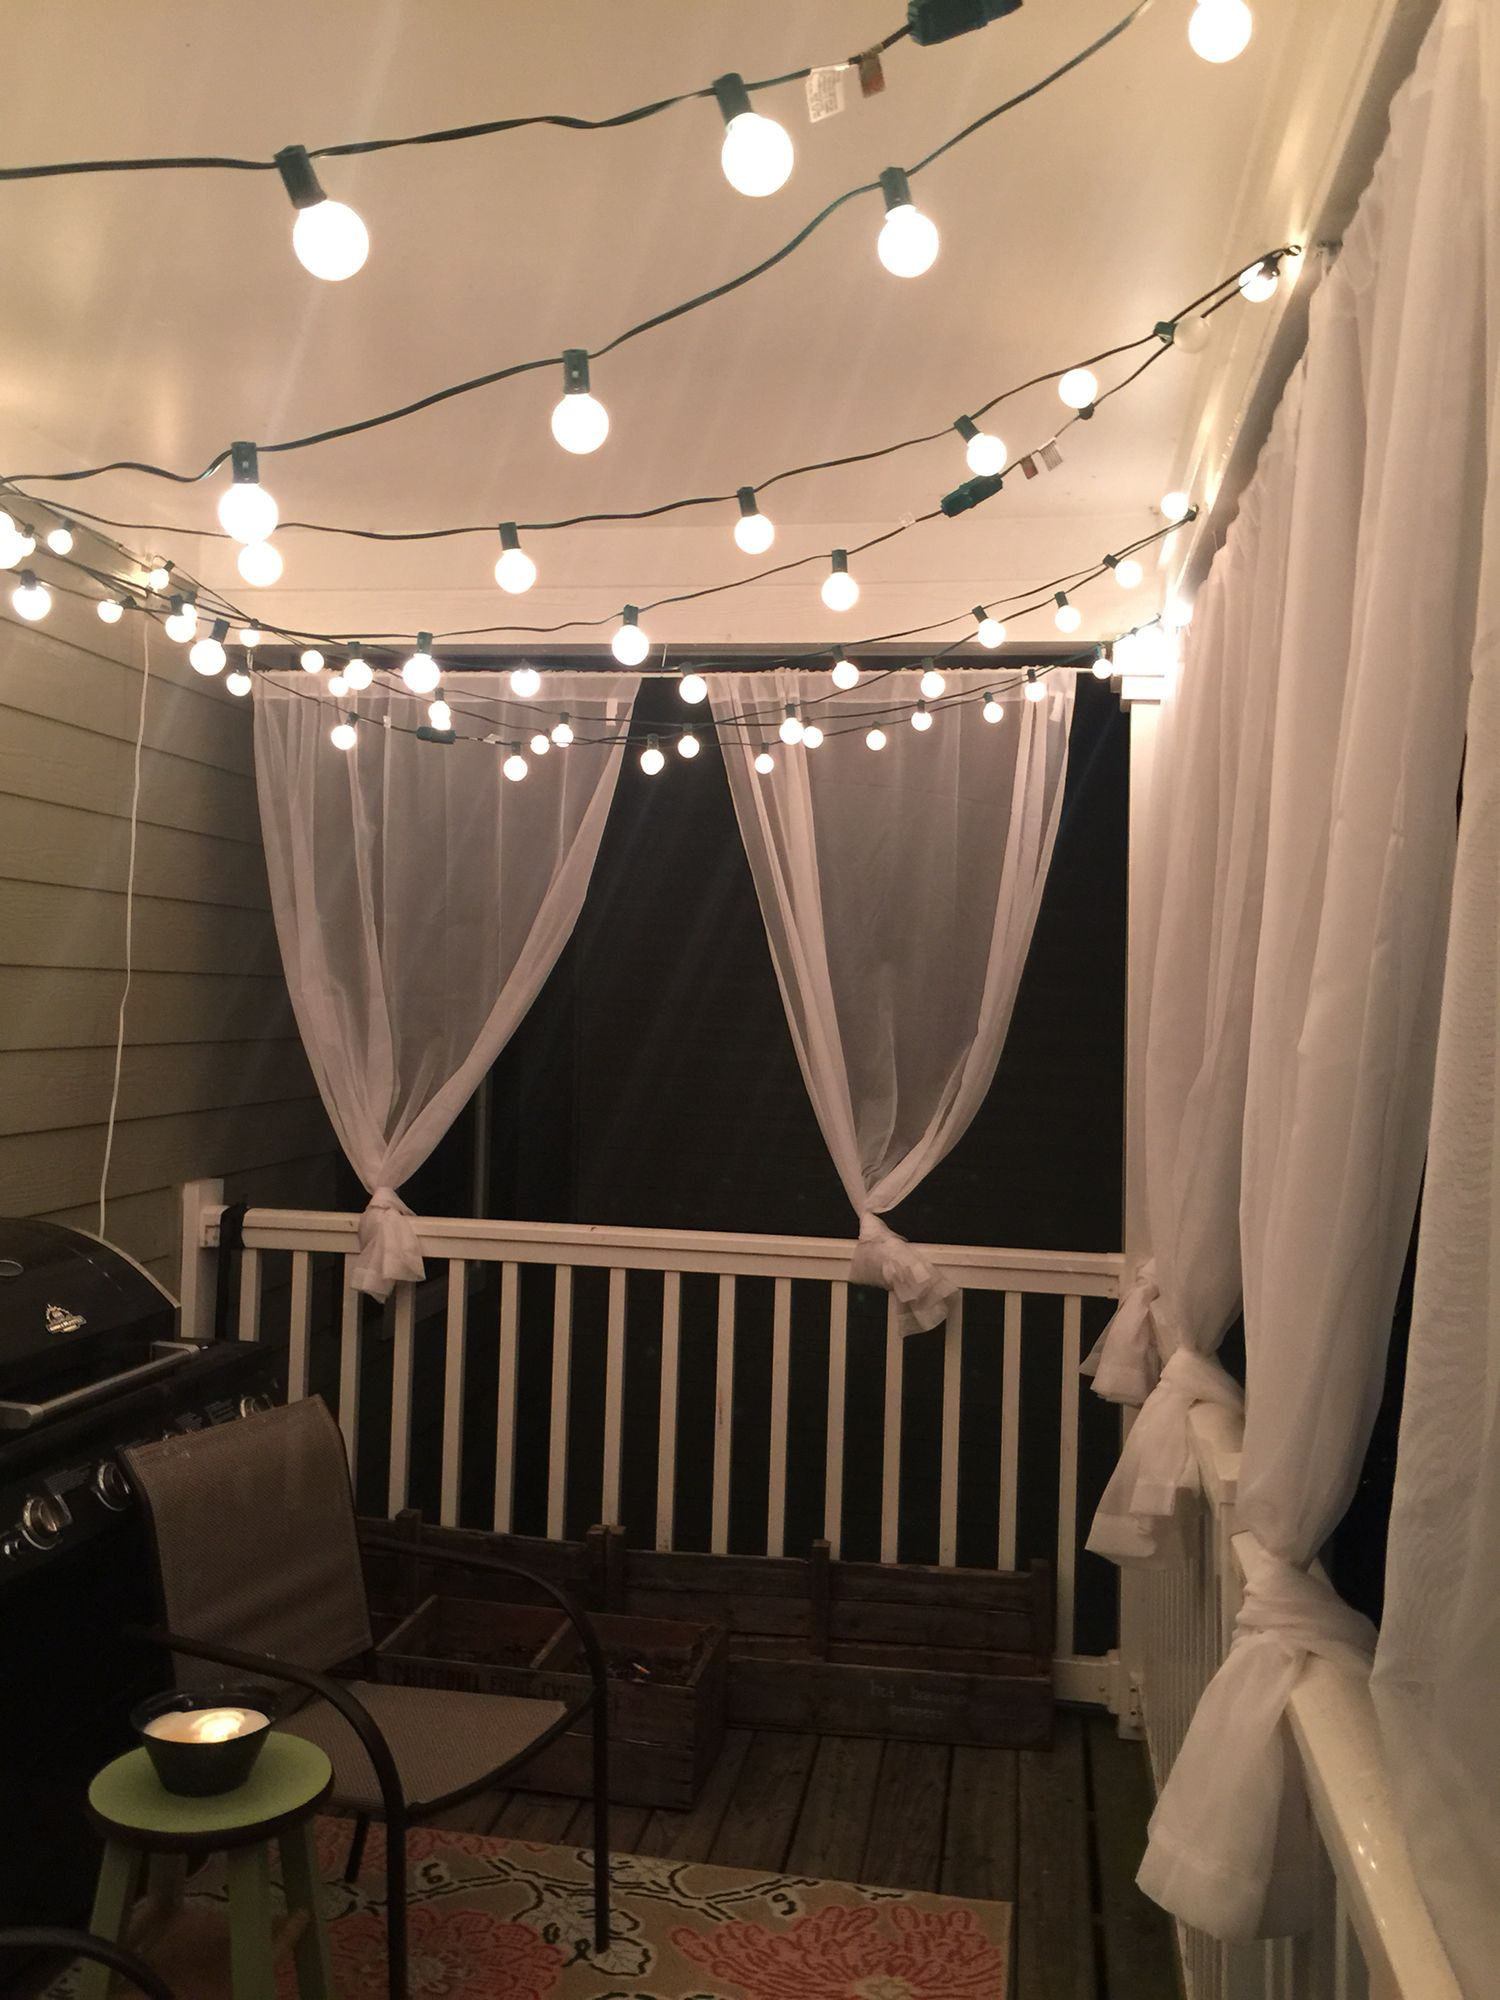 My diy balcony makeover on a budget